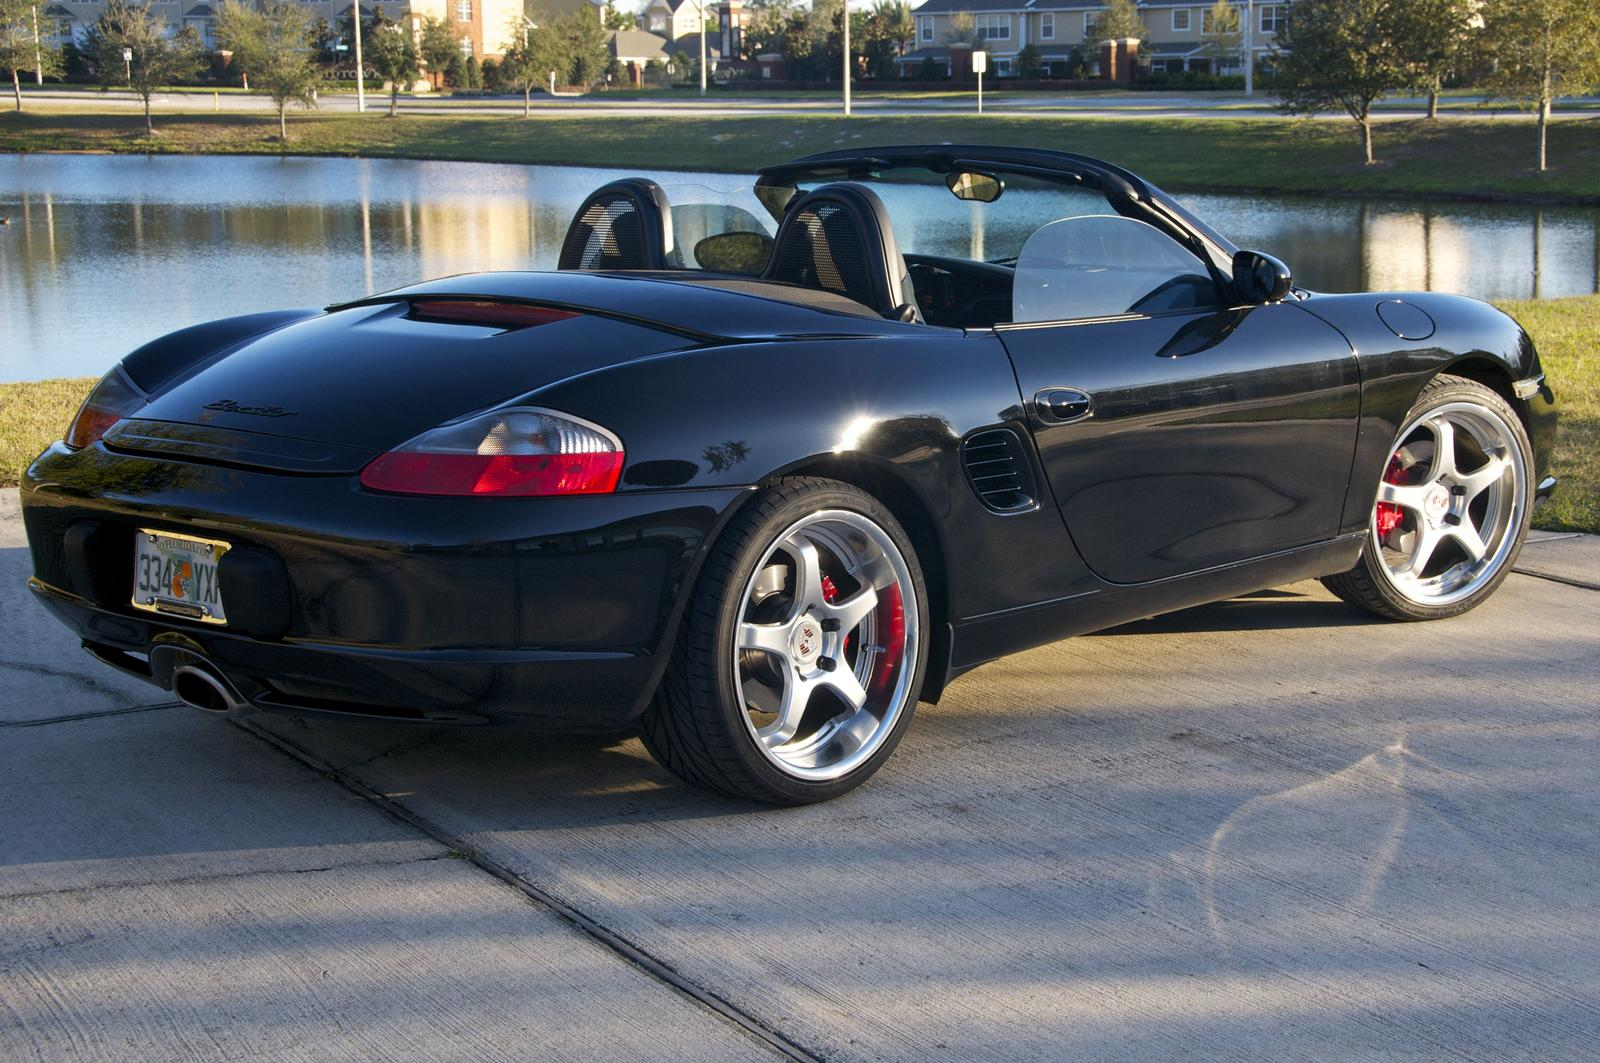 2001 Porsche Boxster (986/987) – pictures, information and specs